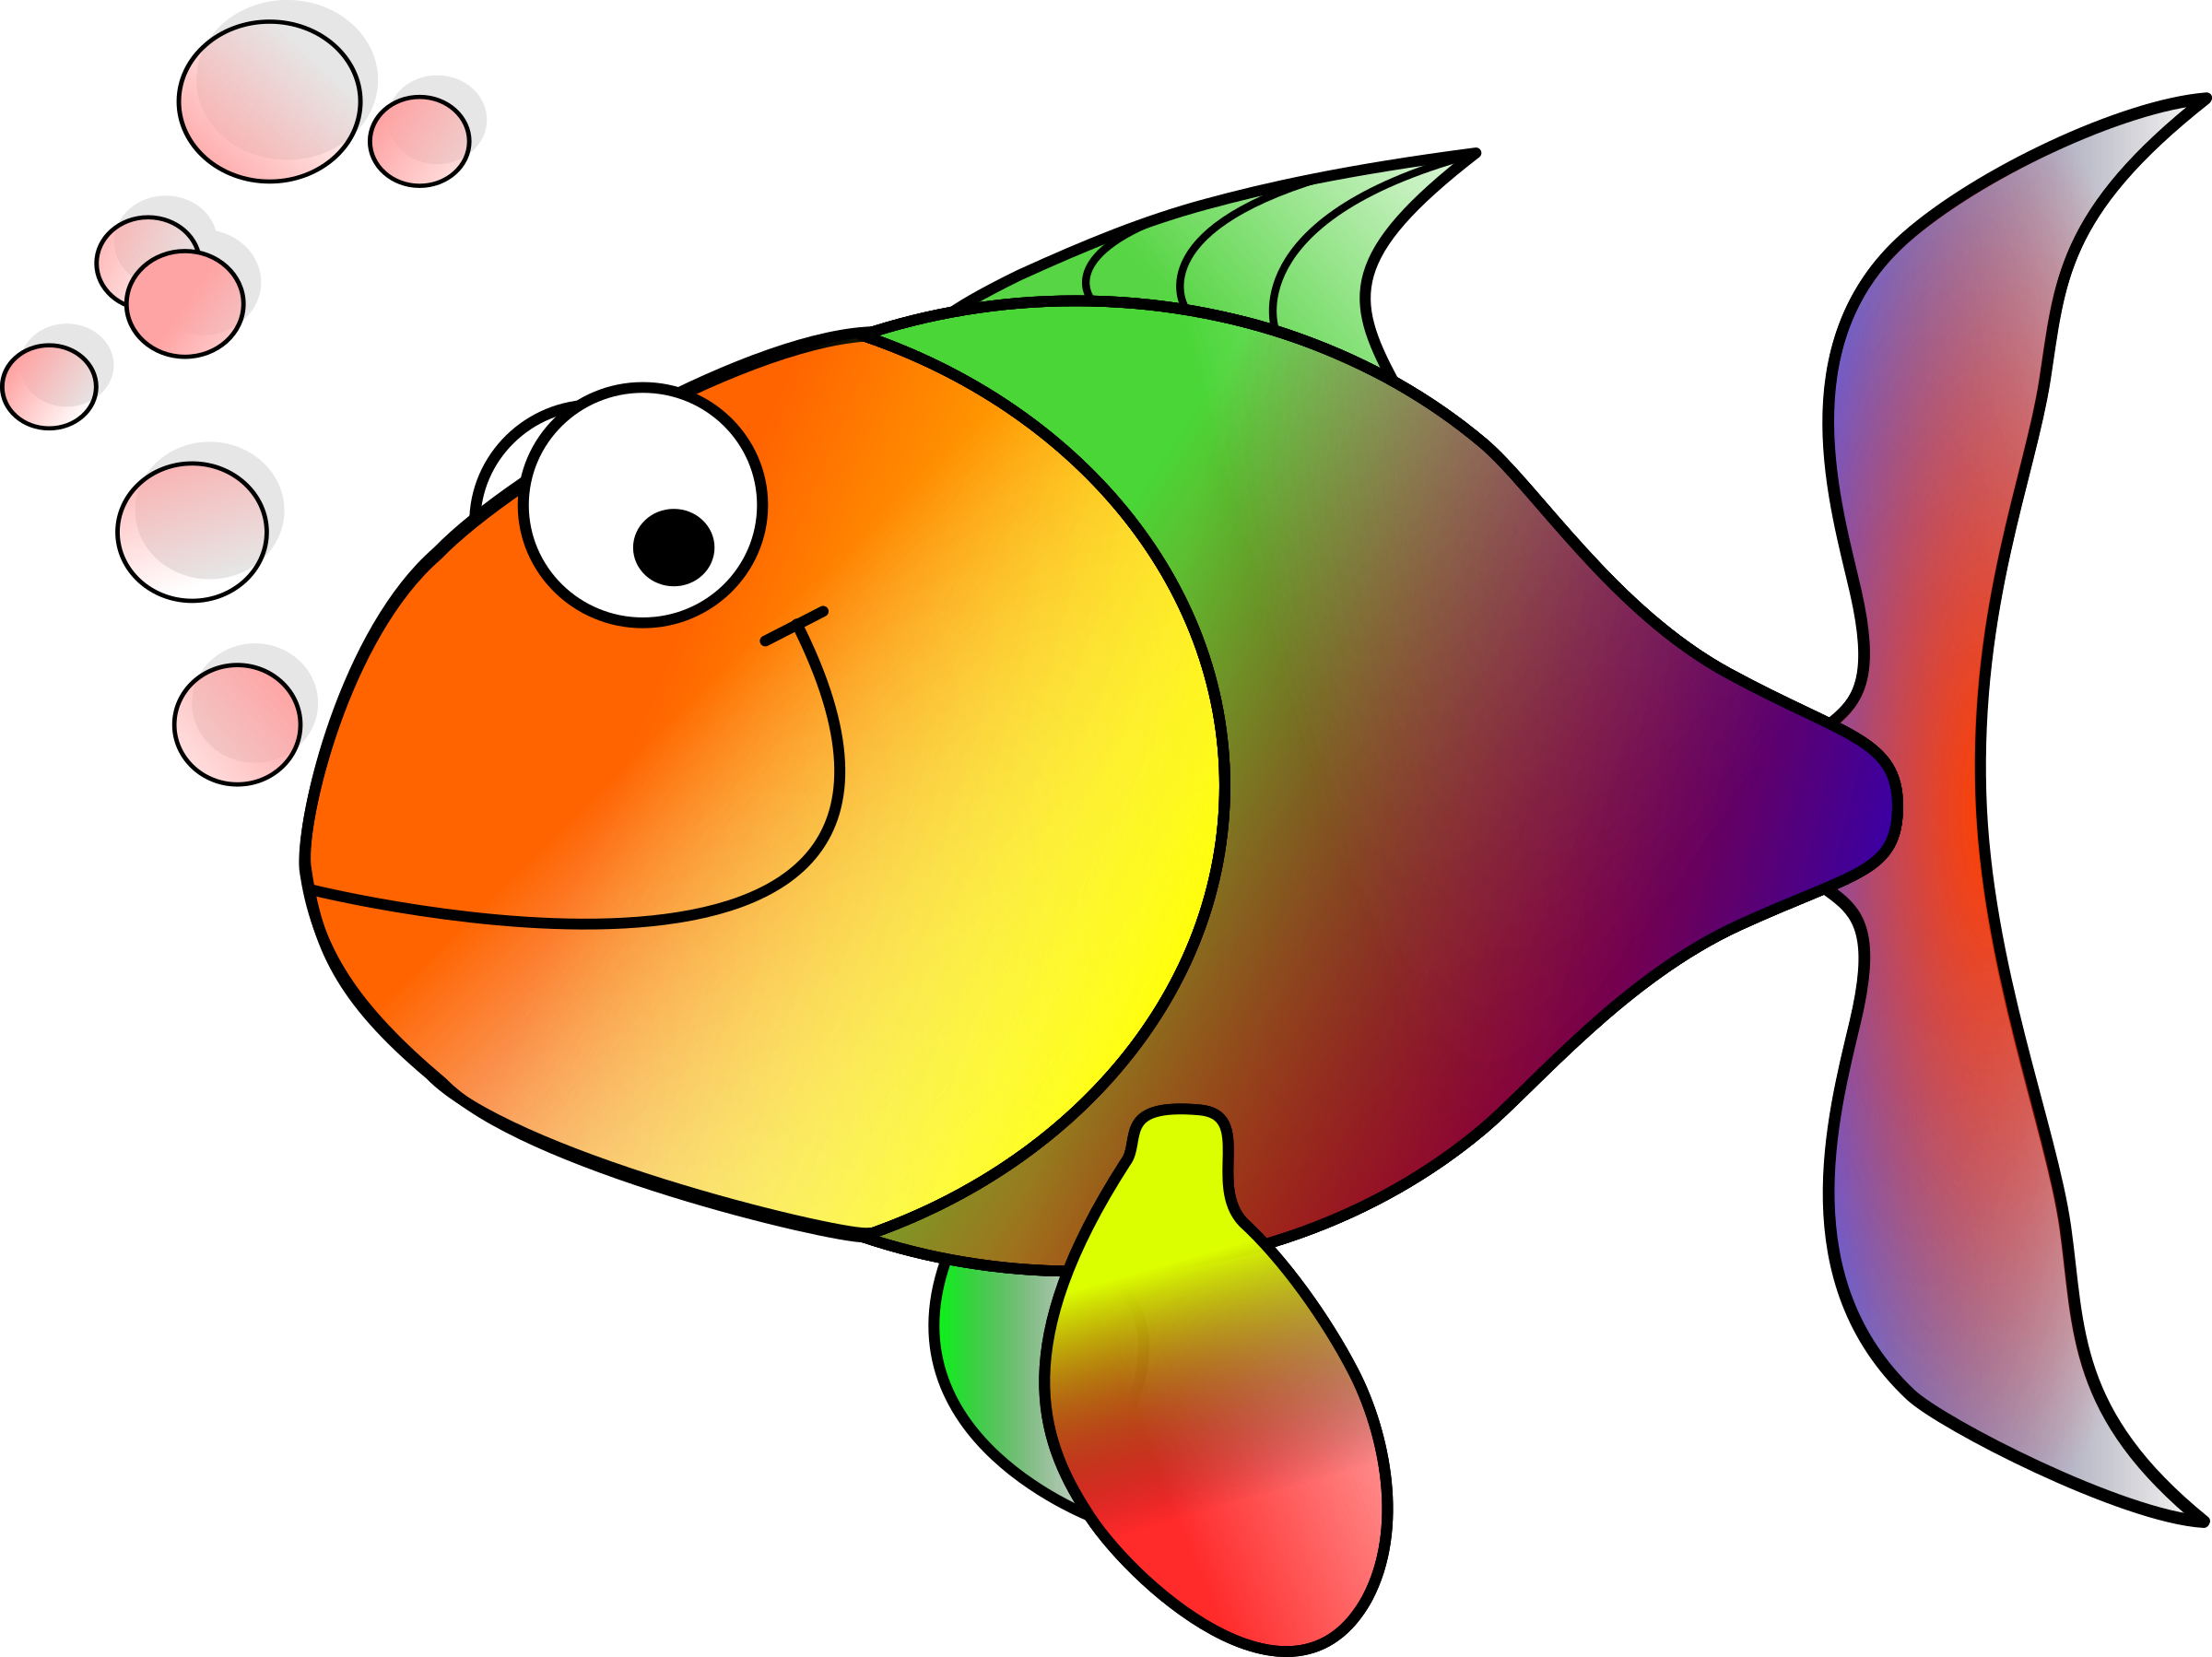 Fish with bubbles clipart black and white royalty free download The Fish Shire by @mgriffiths26, A fish blowing bubbles., on ... royalty free download